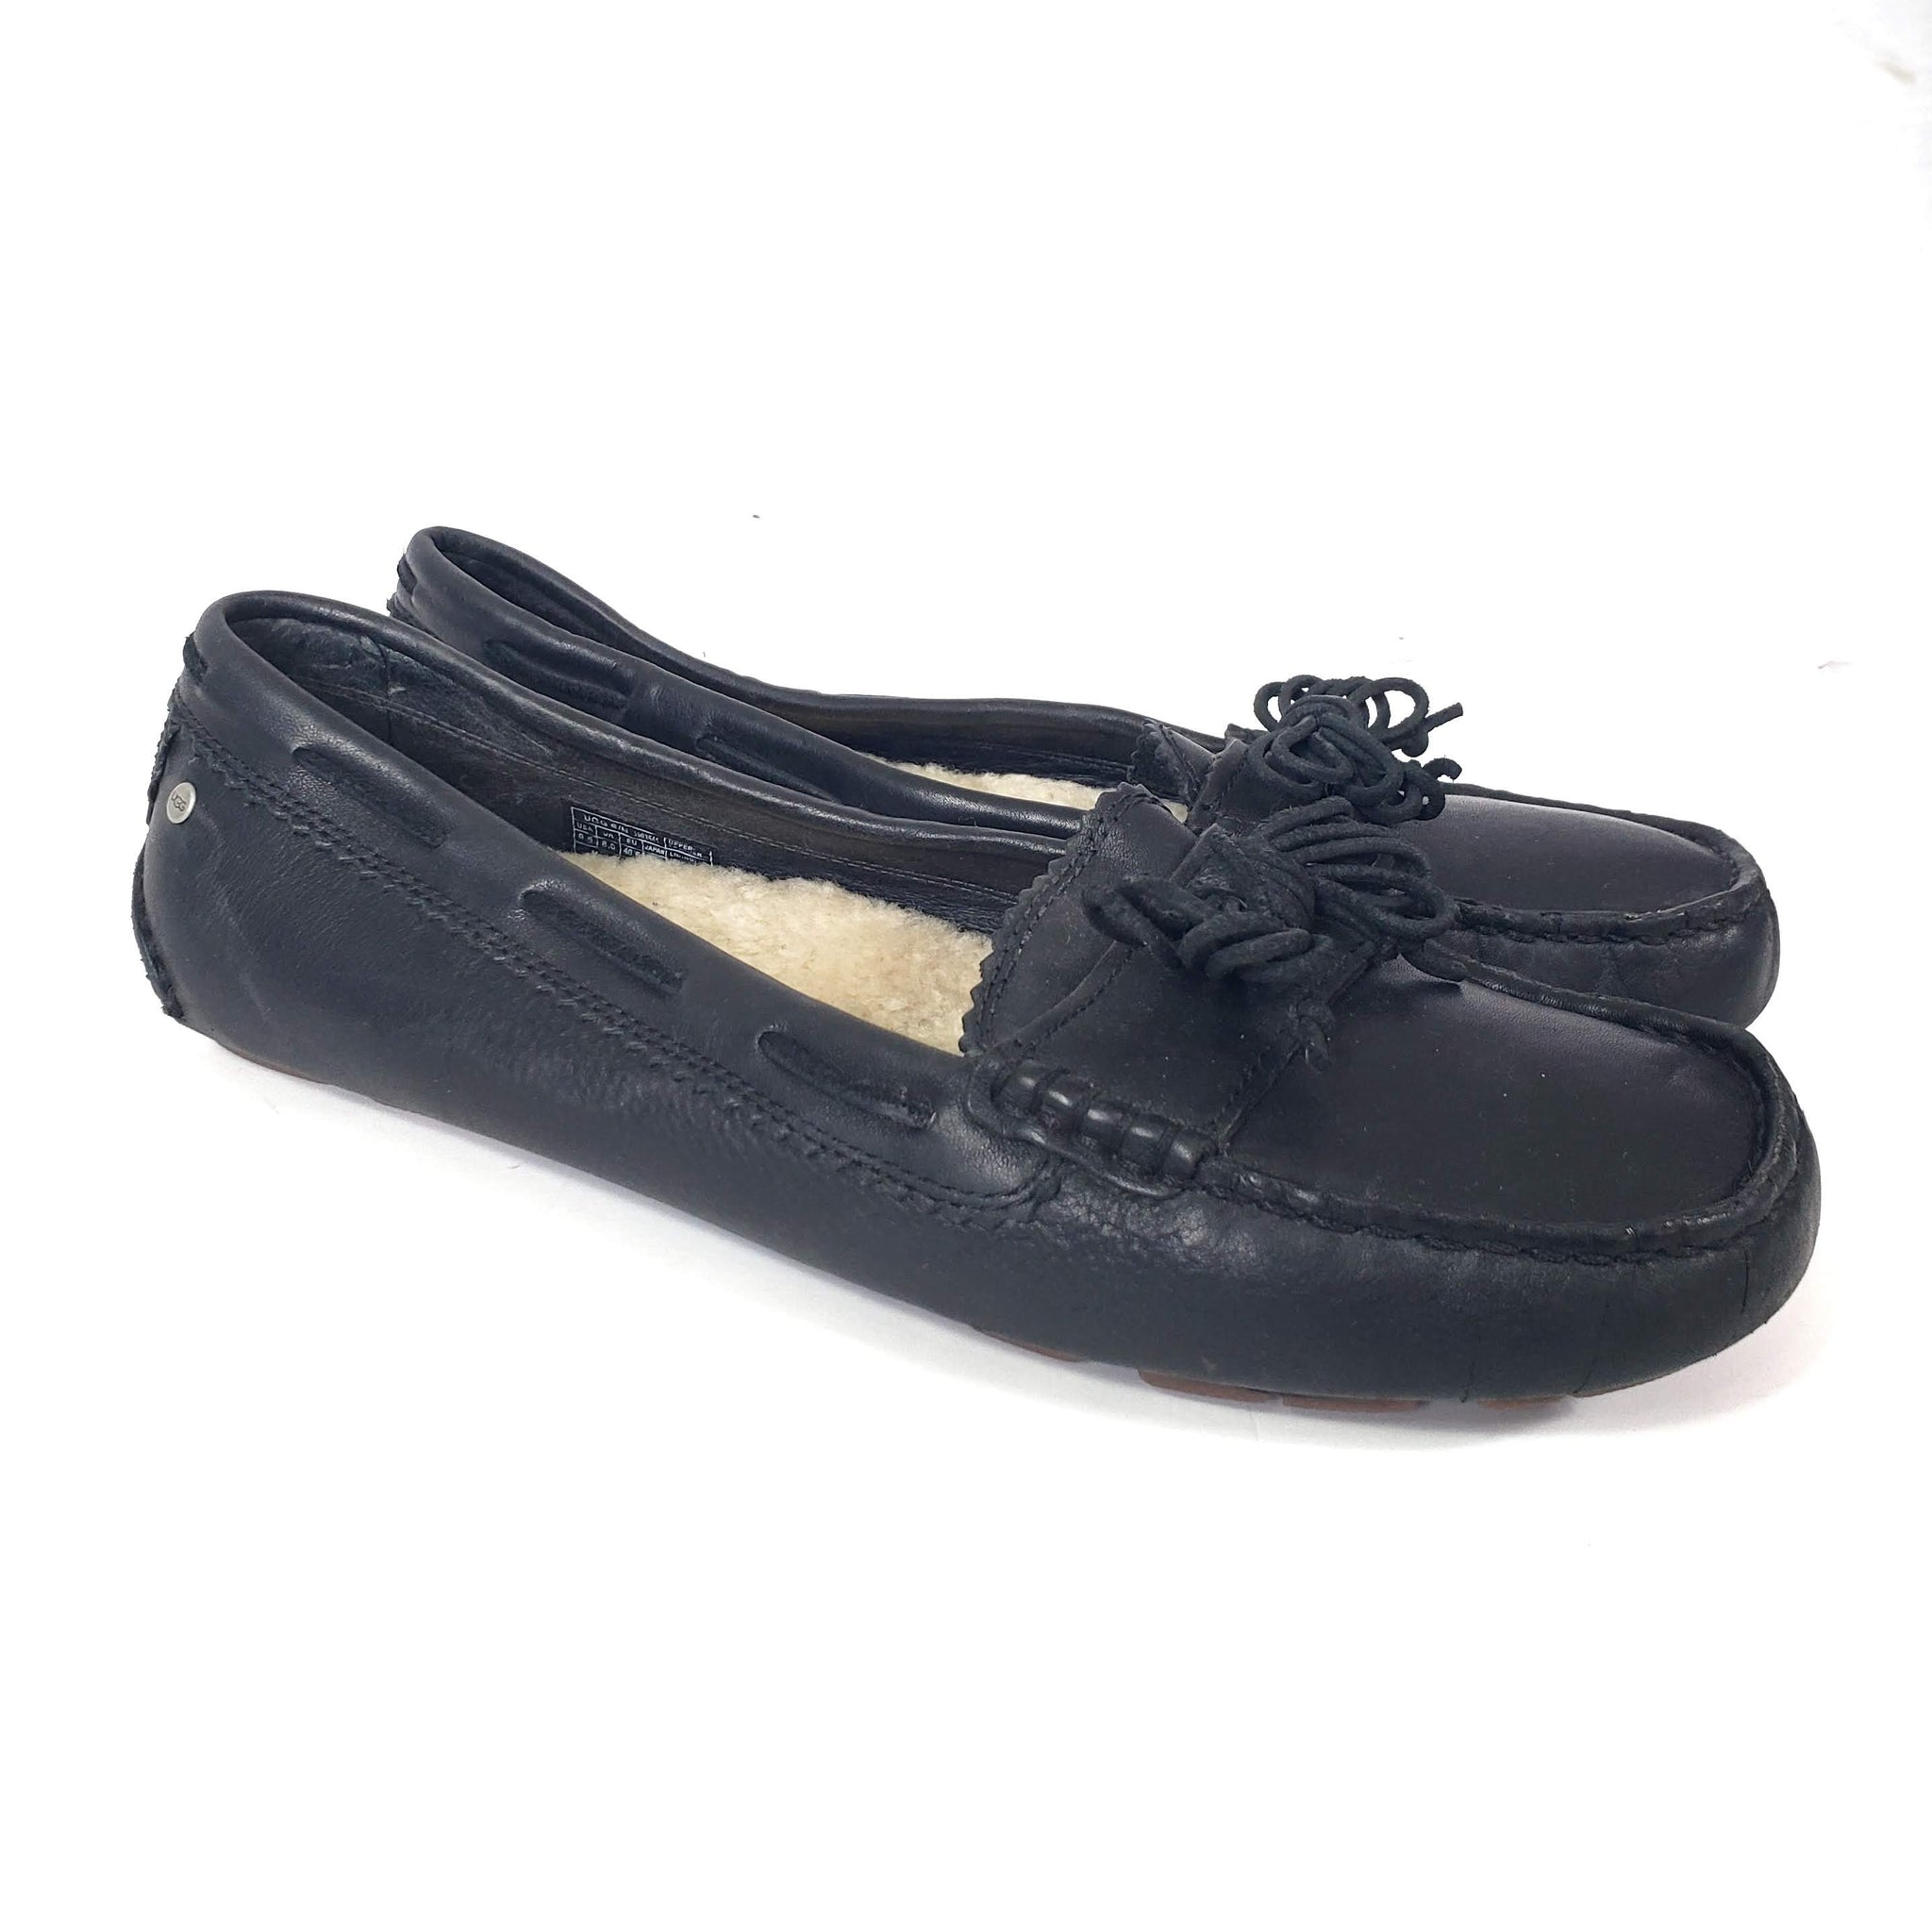 UGG Meena Moccasin Slip On Shoes Size 9.5